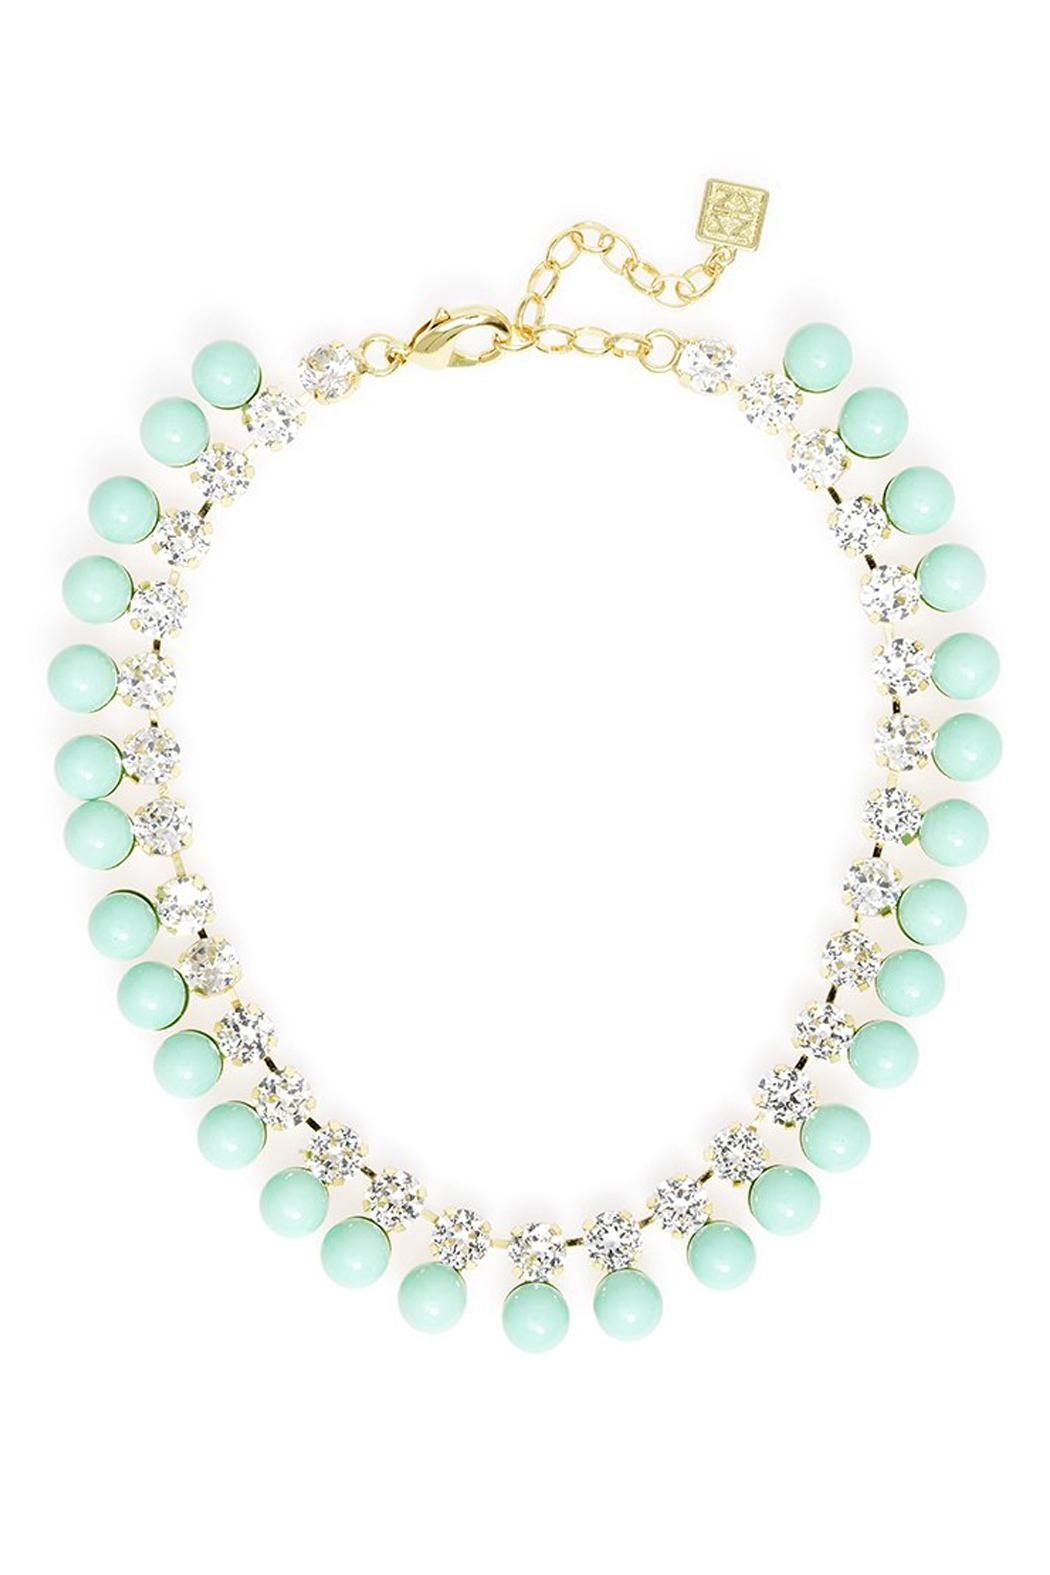 statement necklaces summer euphoria necklace for